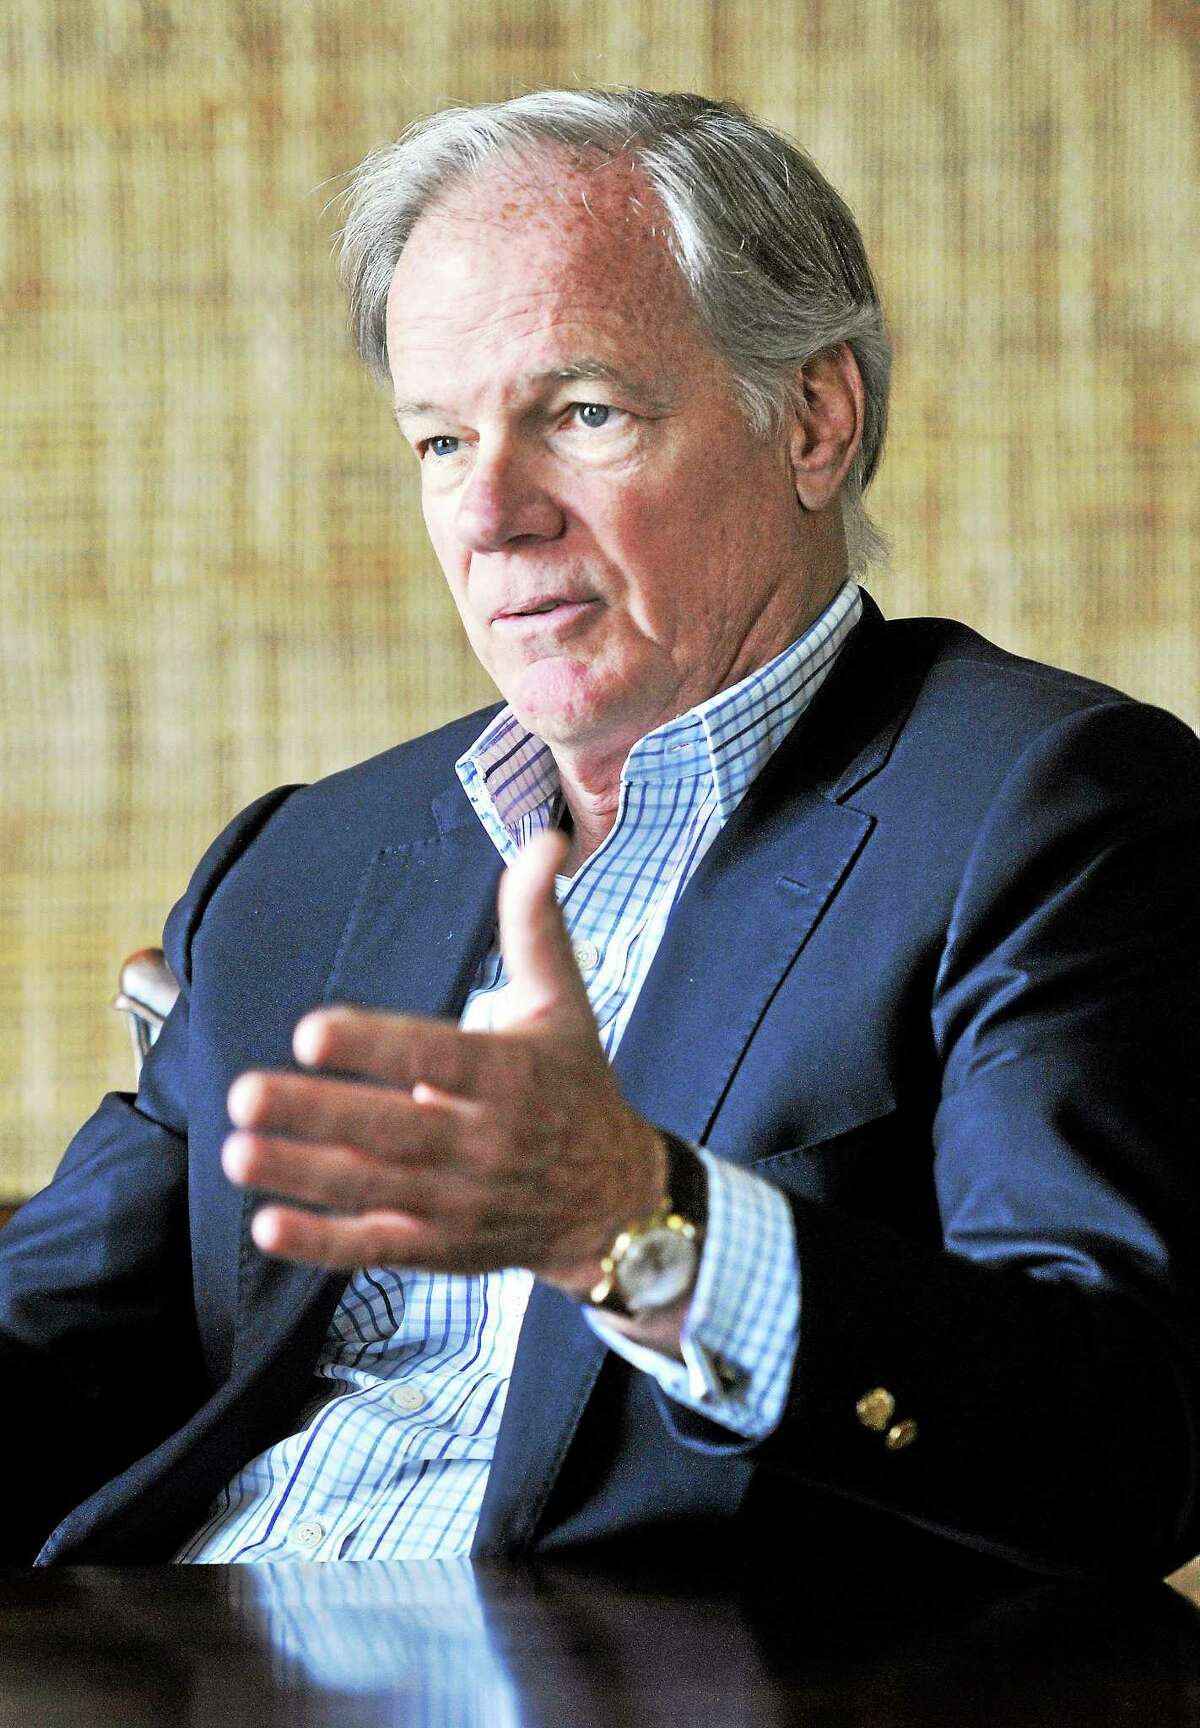 Tom Foley is interviewed at the New Haven Register on 6/11/2014.